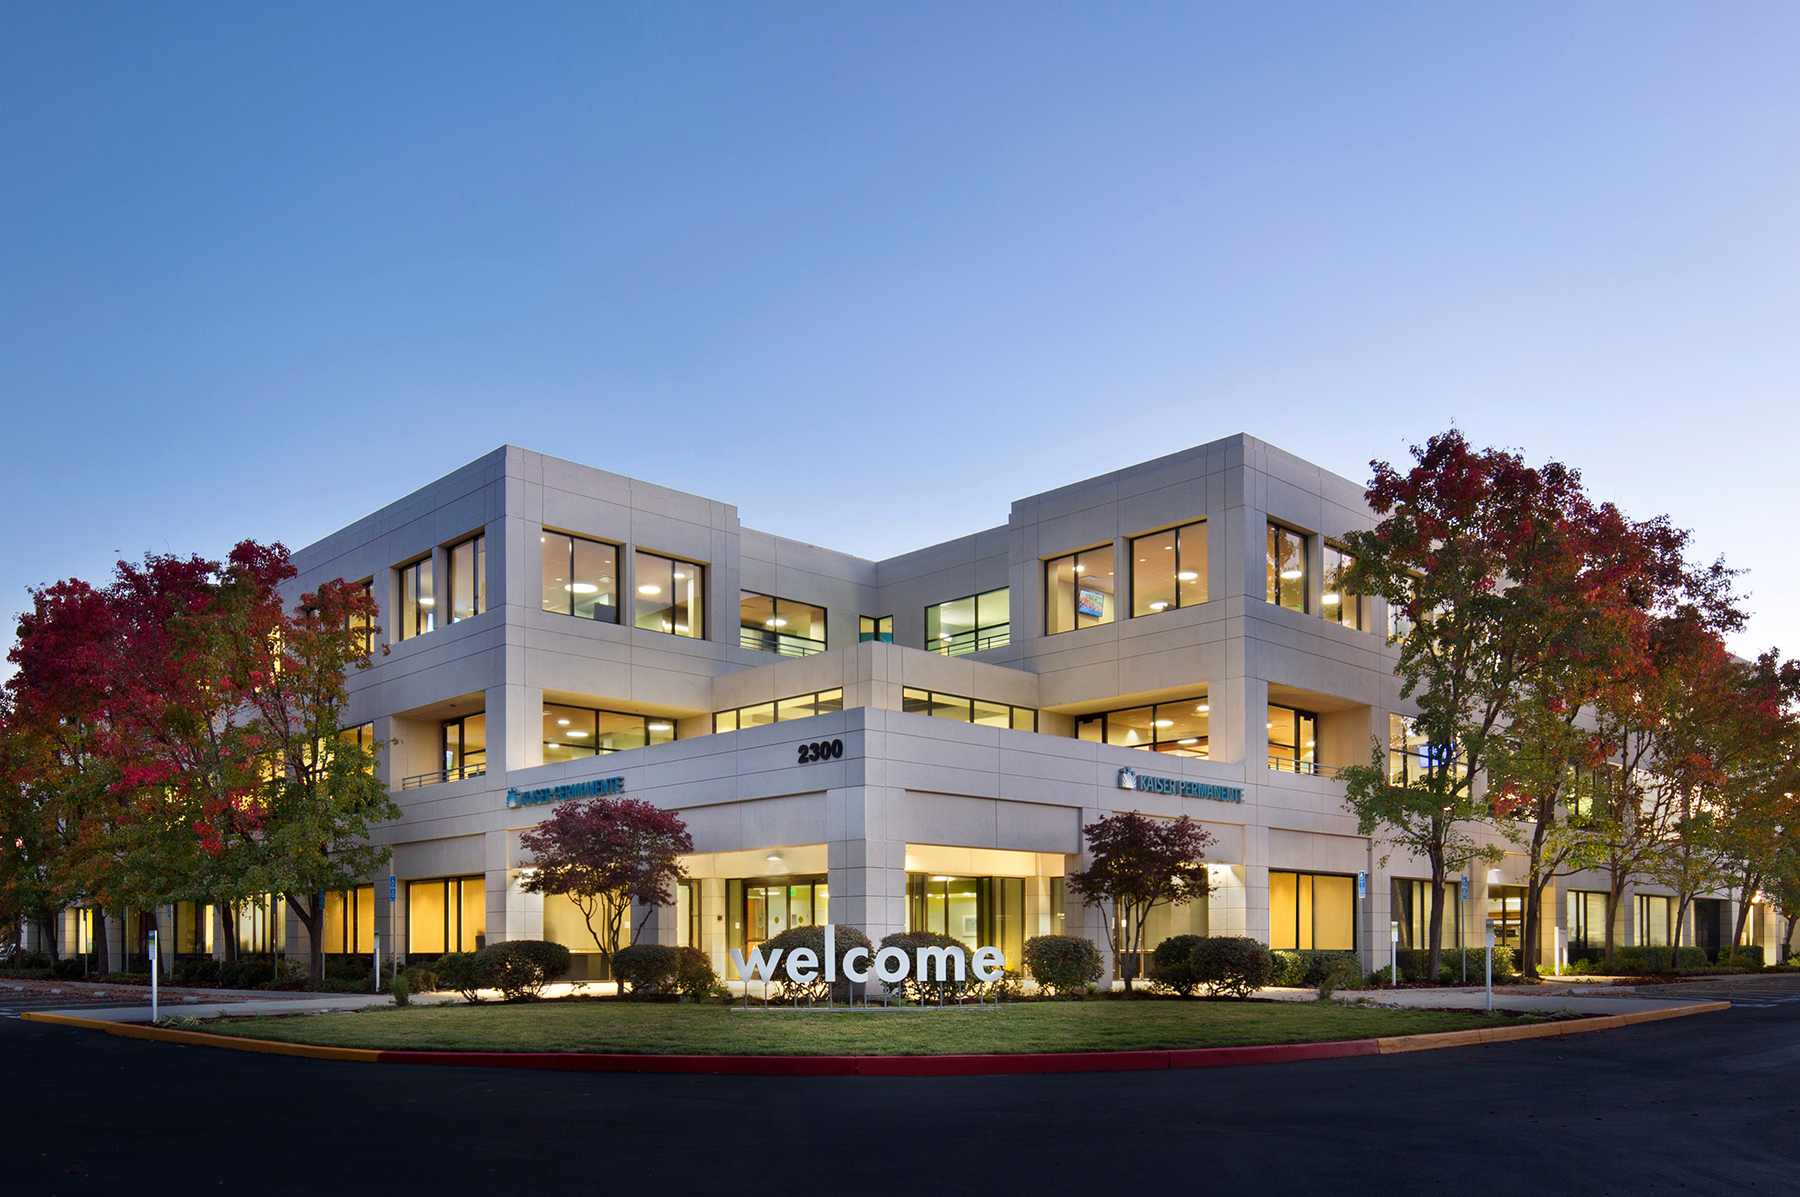 First LEED Gold Certified project in Northern California for Kaiser (Kaiser Bishop Ranch, San Ramon)